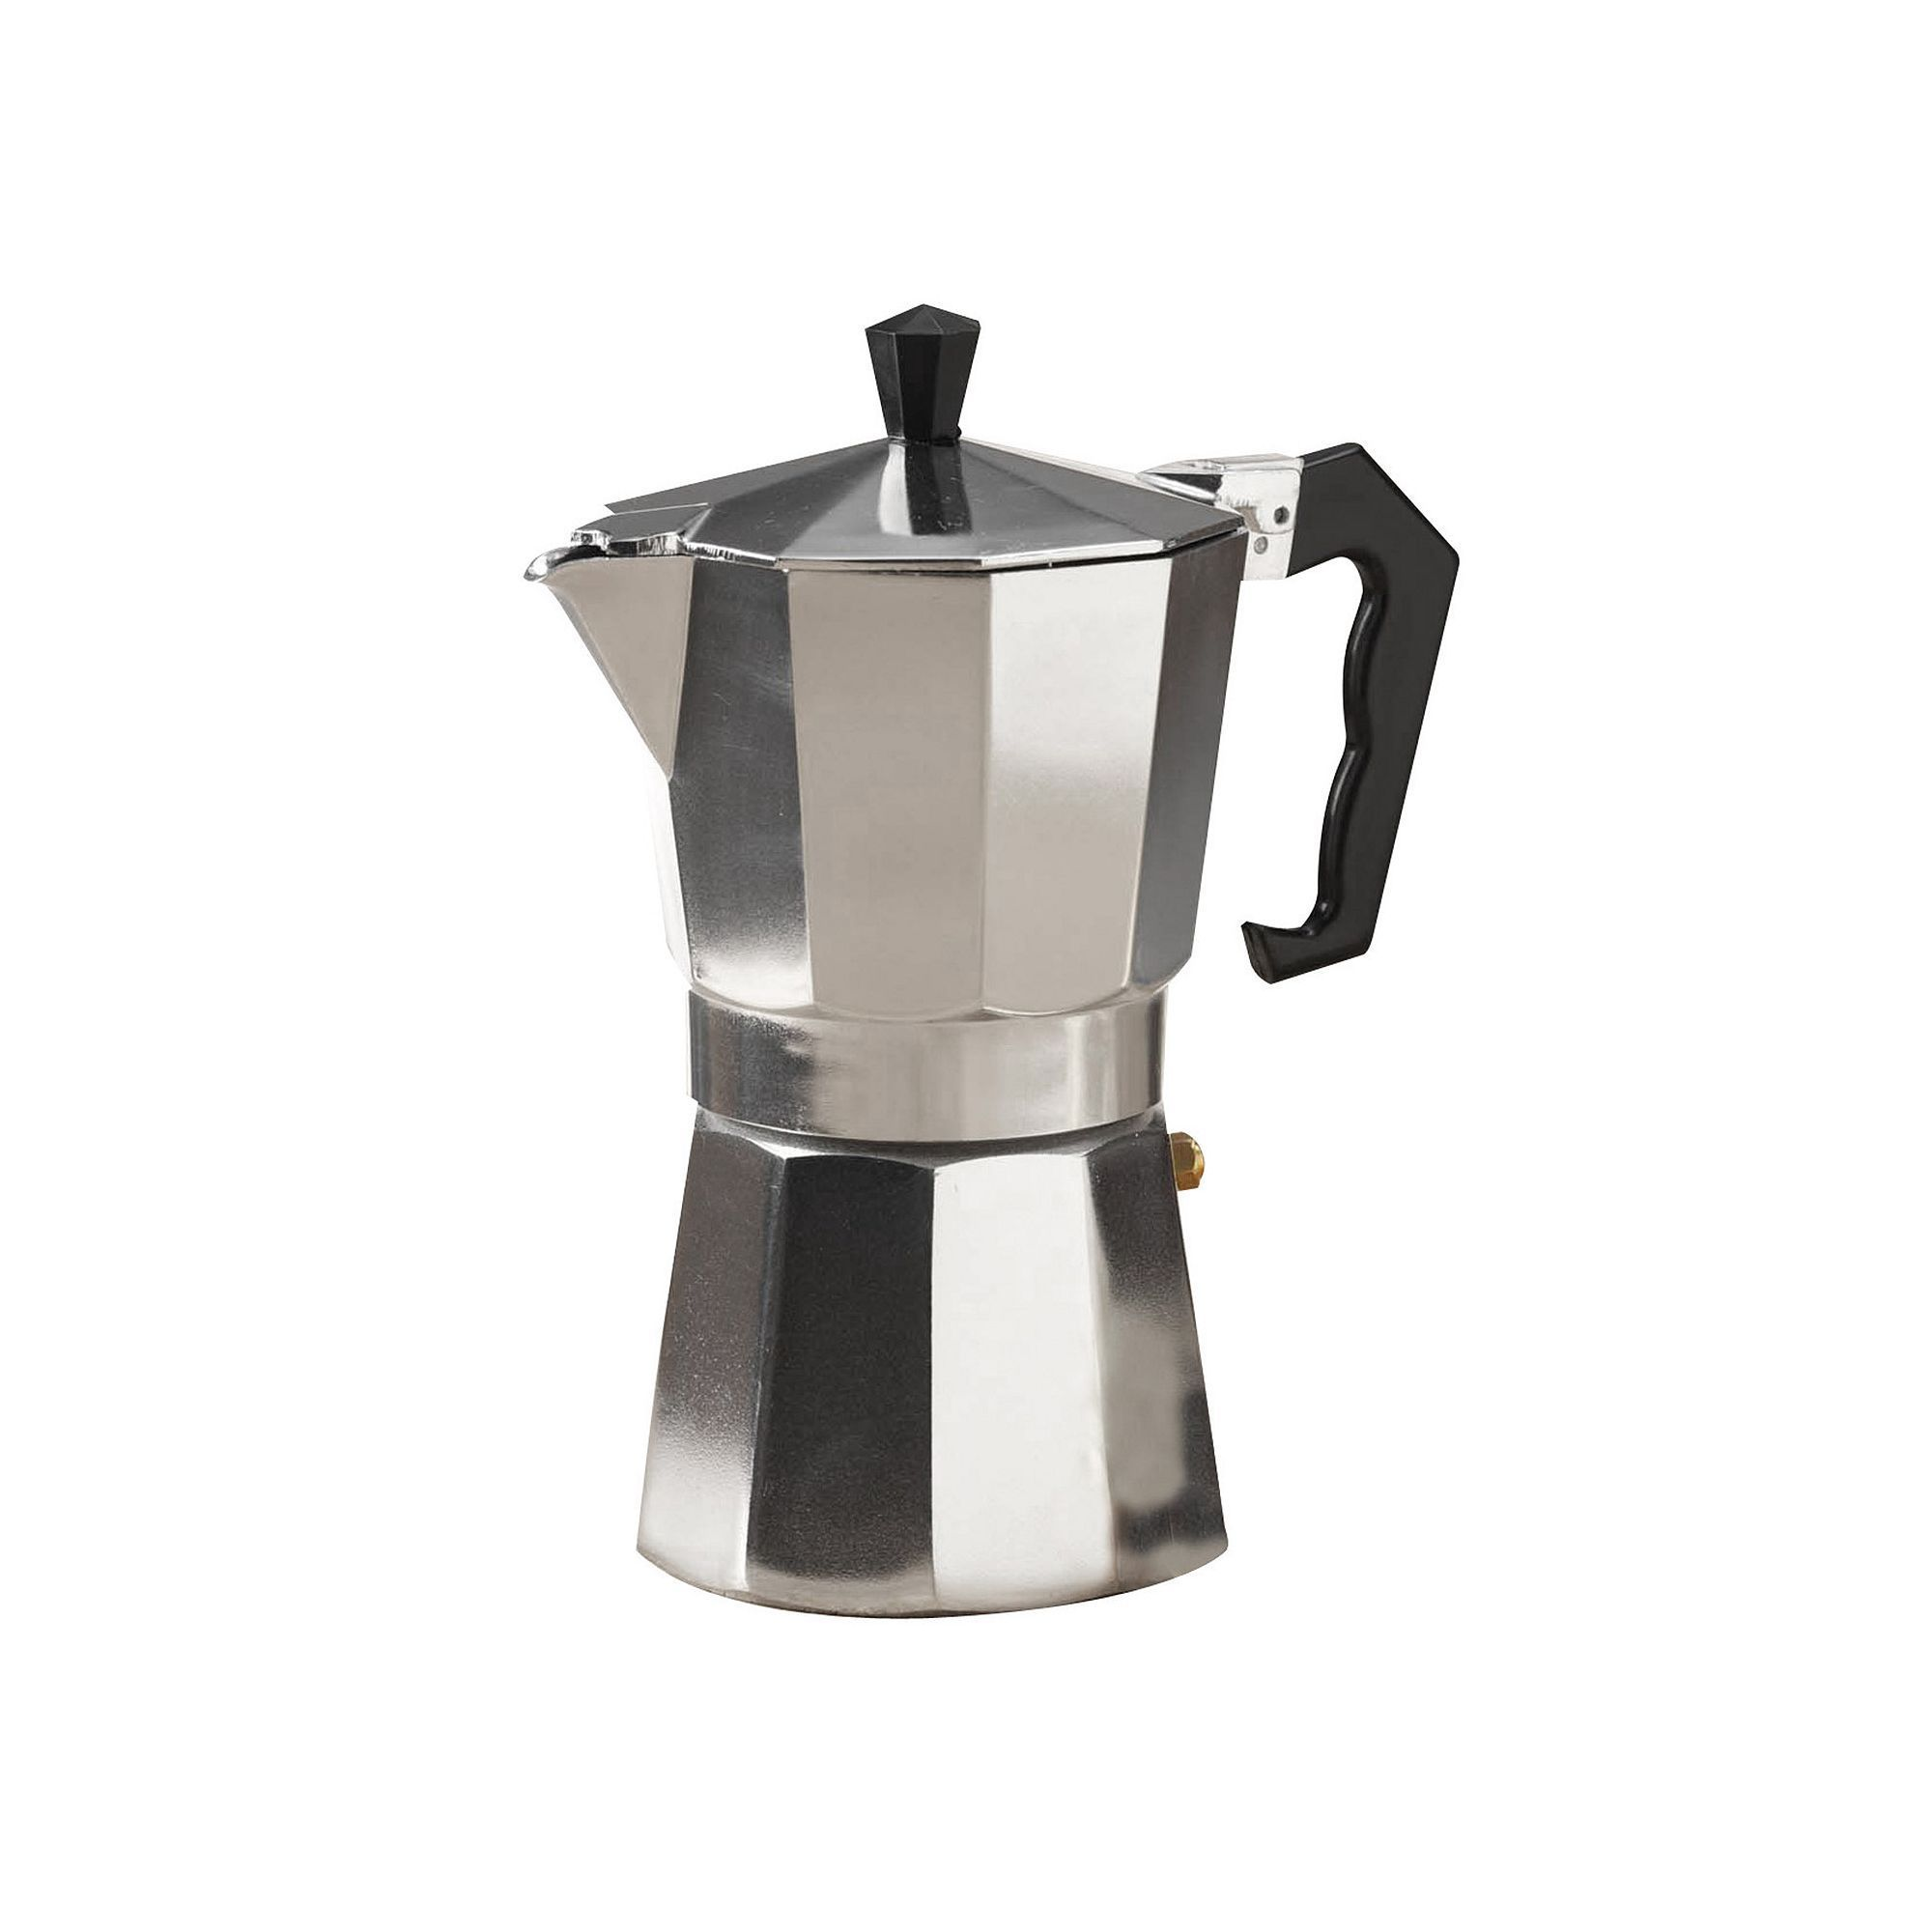 Primula cup stainless steel stovetop espresso maker bialetti